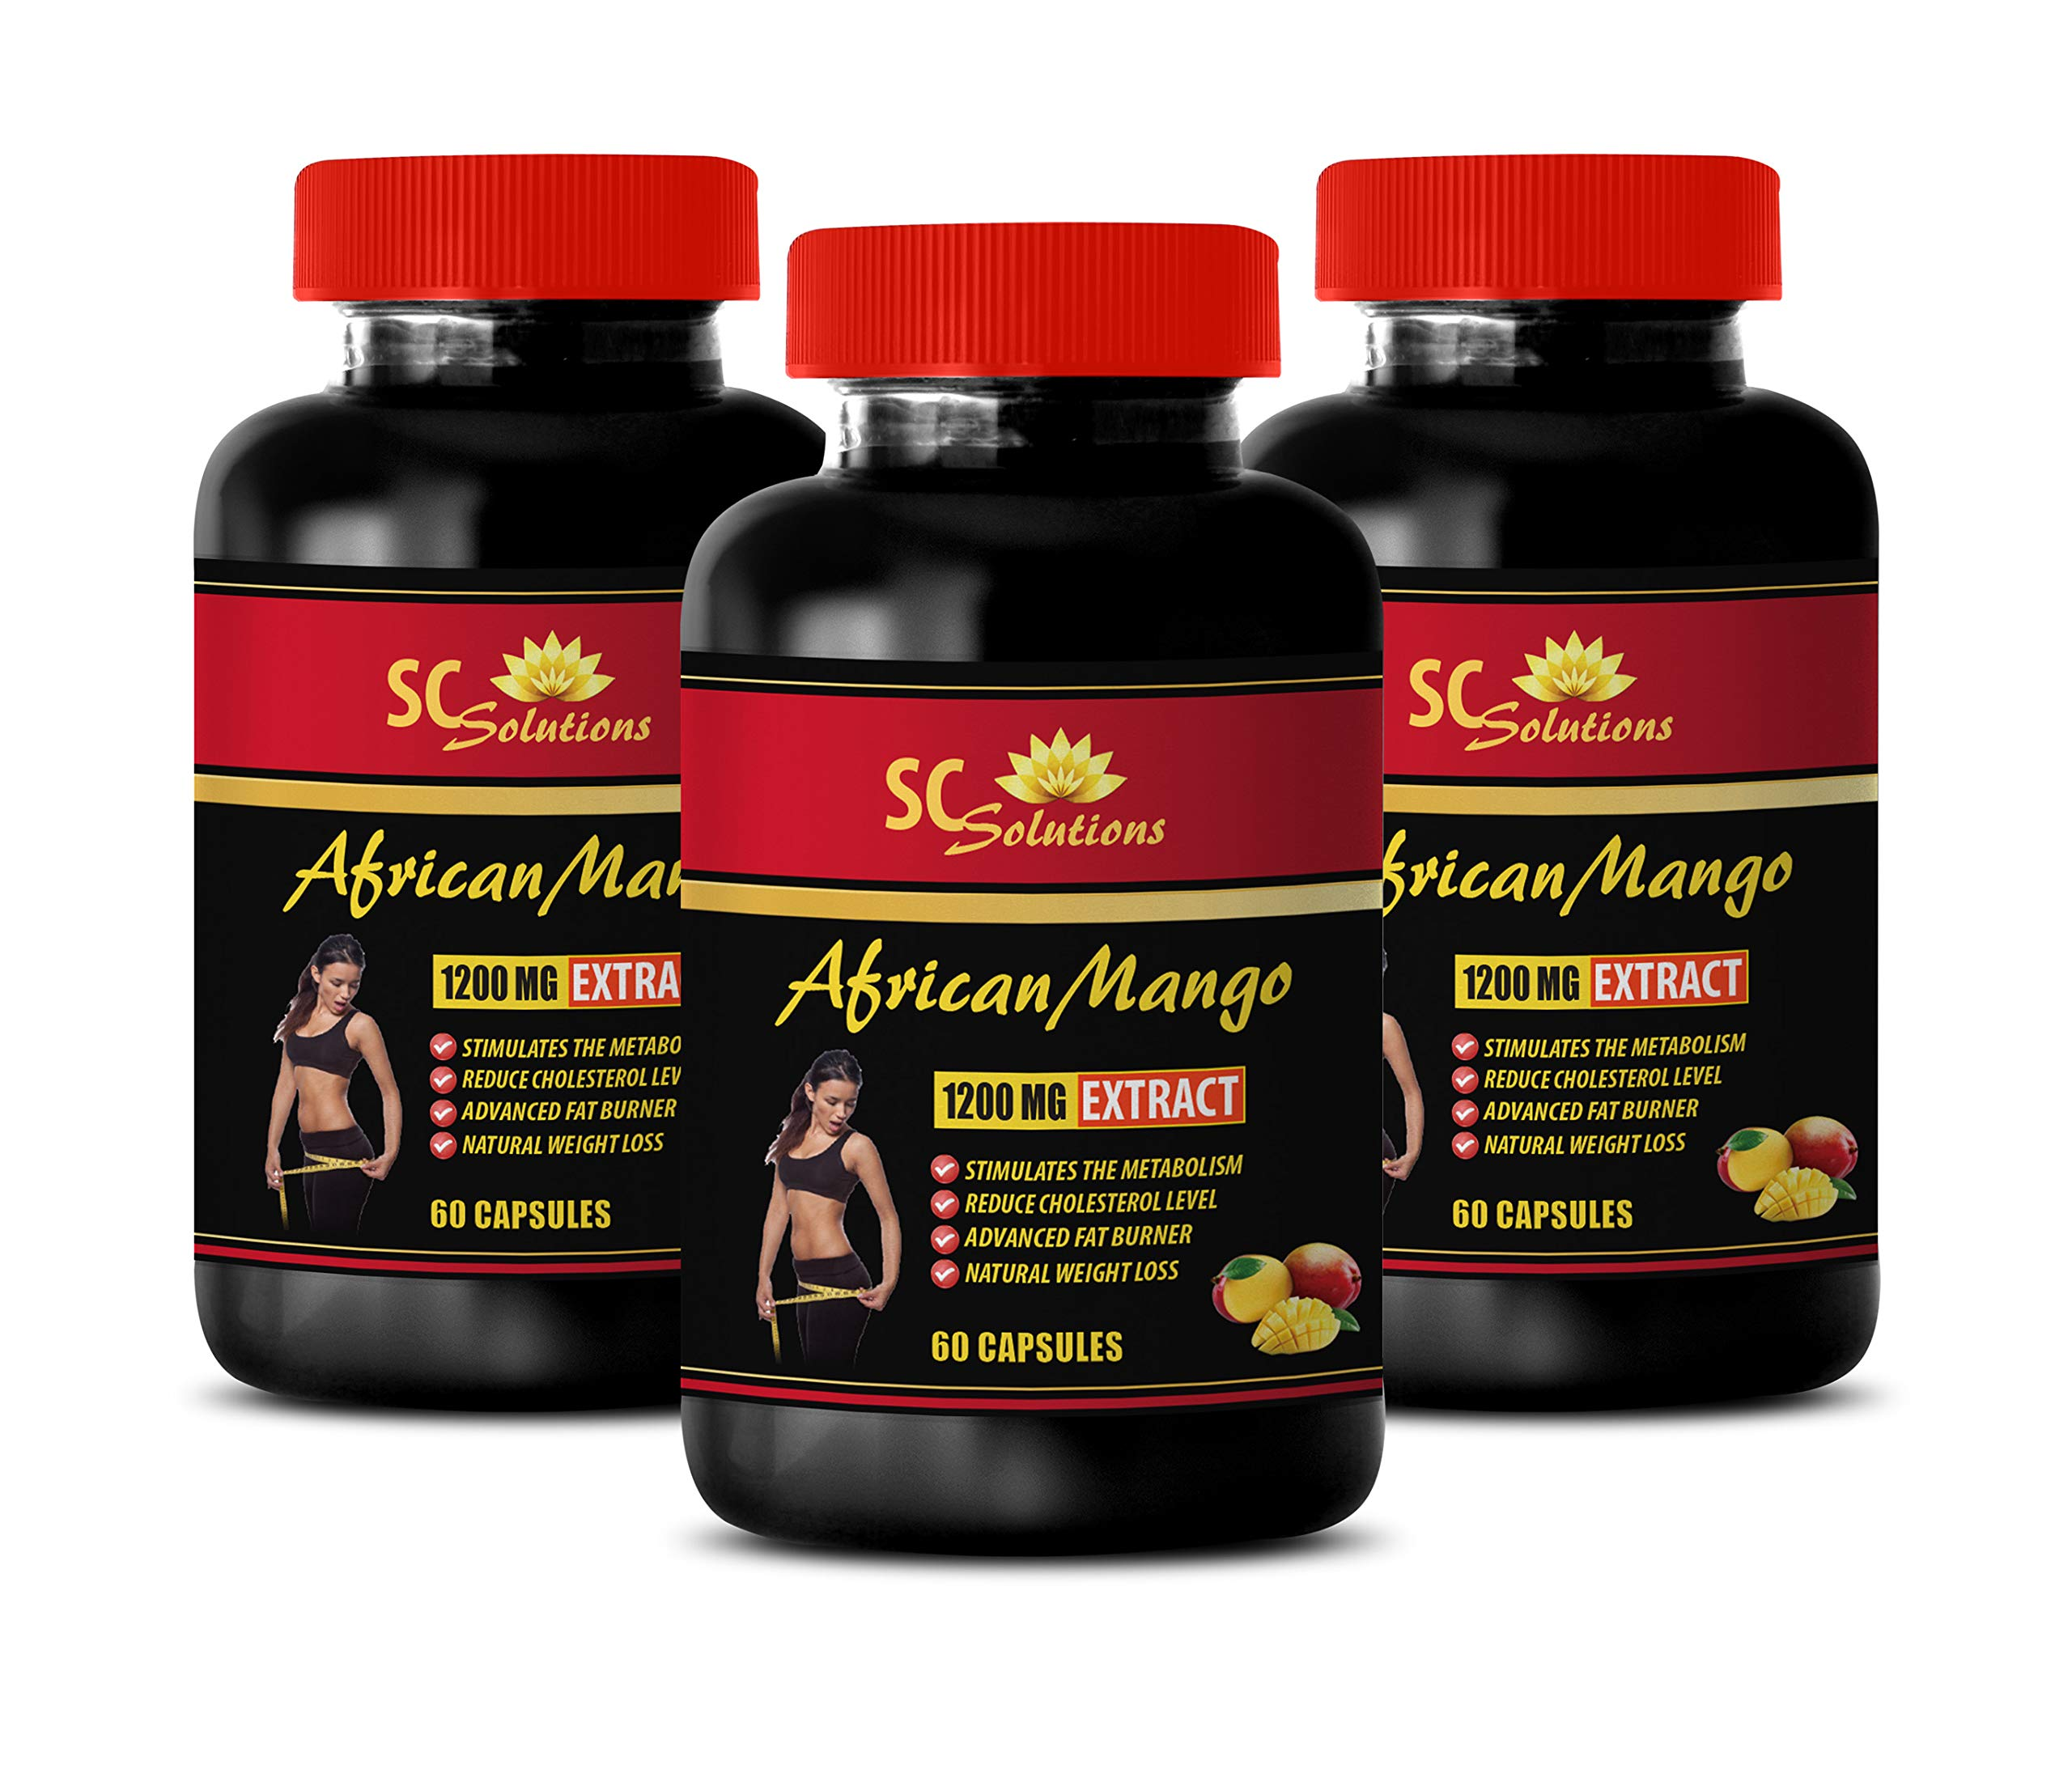 Anti oxidant Supplement - African Mango Extract 1200MG - African Bush Mango - 3 Bottles (180 Capsules)